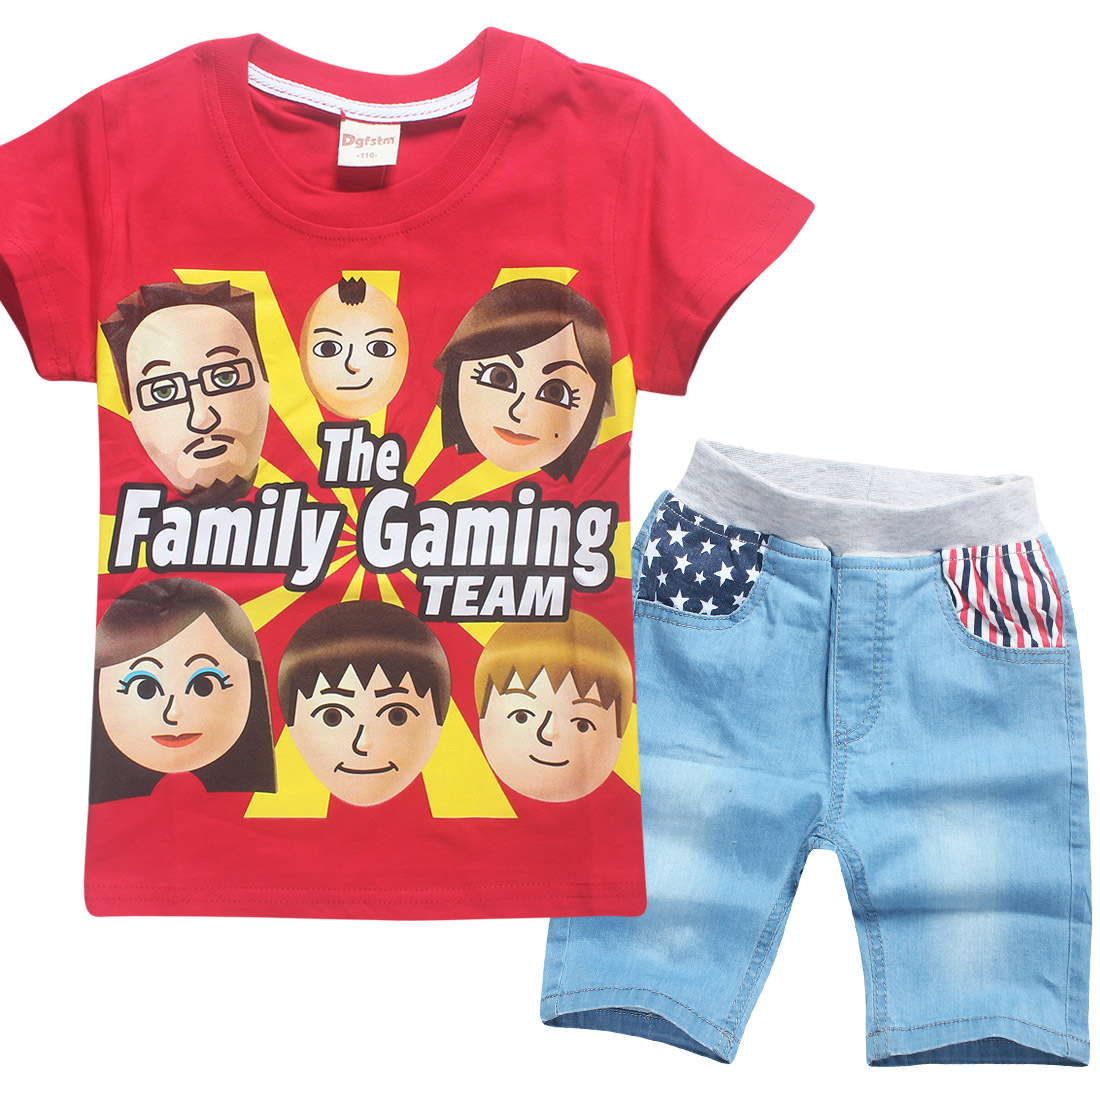 Childrens Set Roblox Fgteev the Family Game T-shirt + Jeans 2 Pcs Boys Set Summer Leisure Kids Clothes Teen Girls Sports Suits